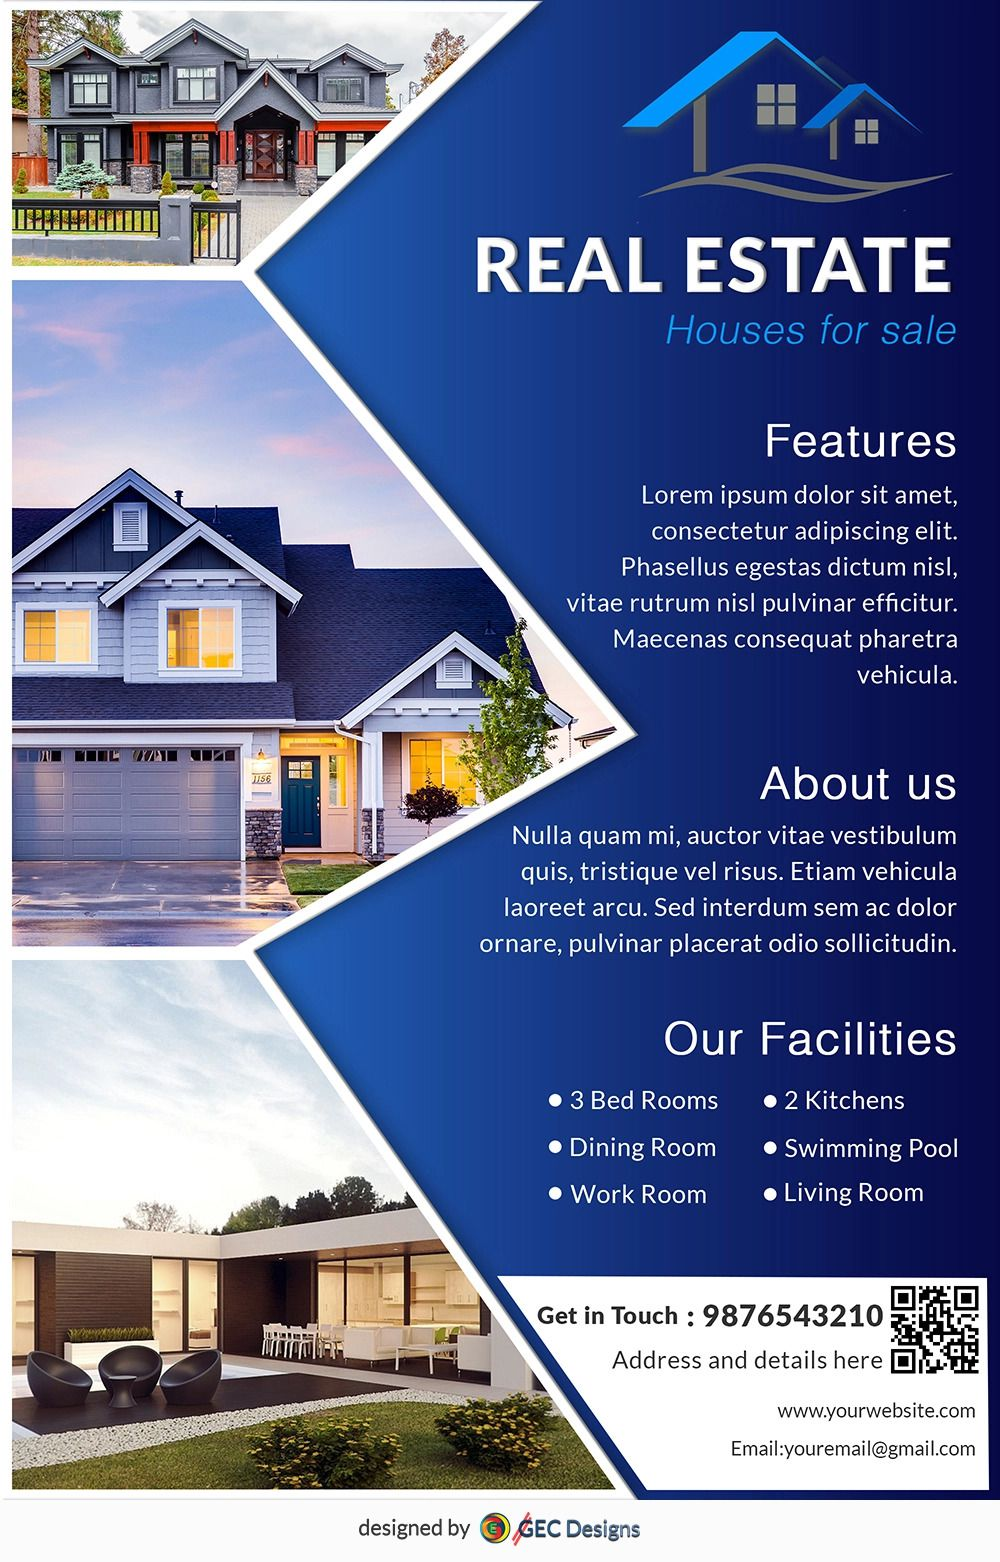 004 Top Real Estate Flyer Template Free Inspiration  Publisher Commercial Pdf DownloadFull